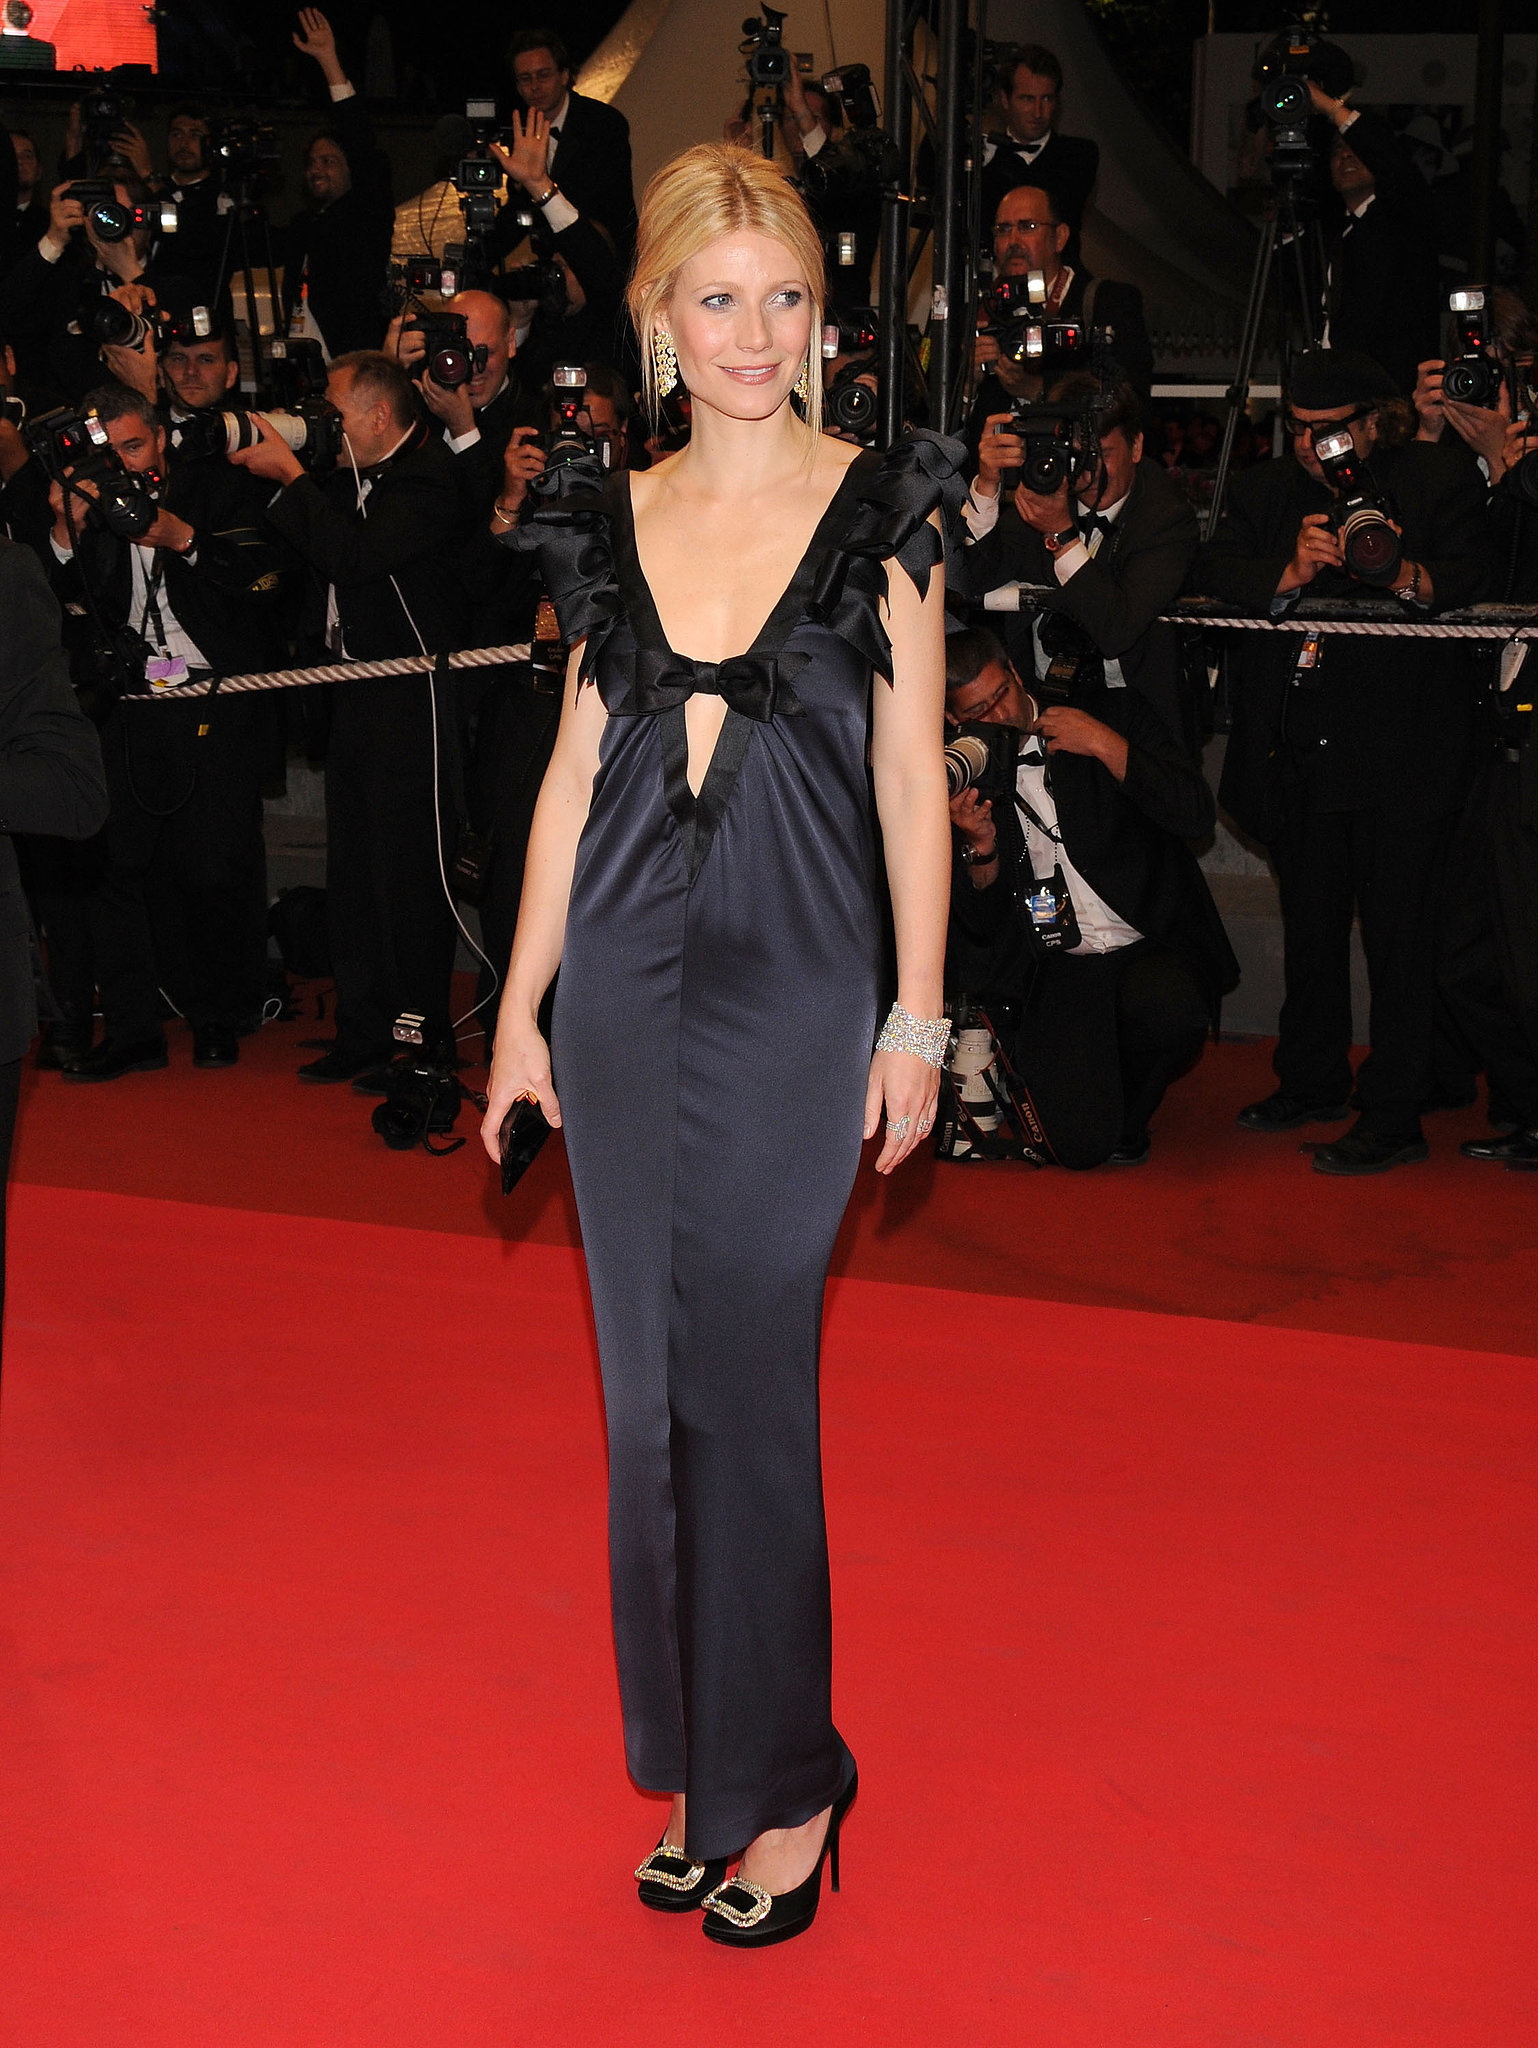 Gwyneth Paltrow looked gorgeous at the festival in 2008.